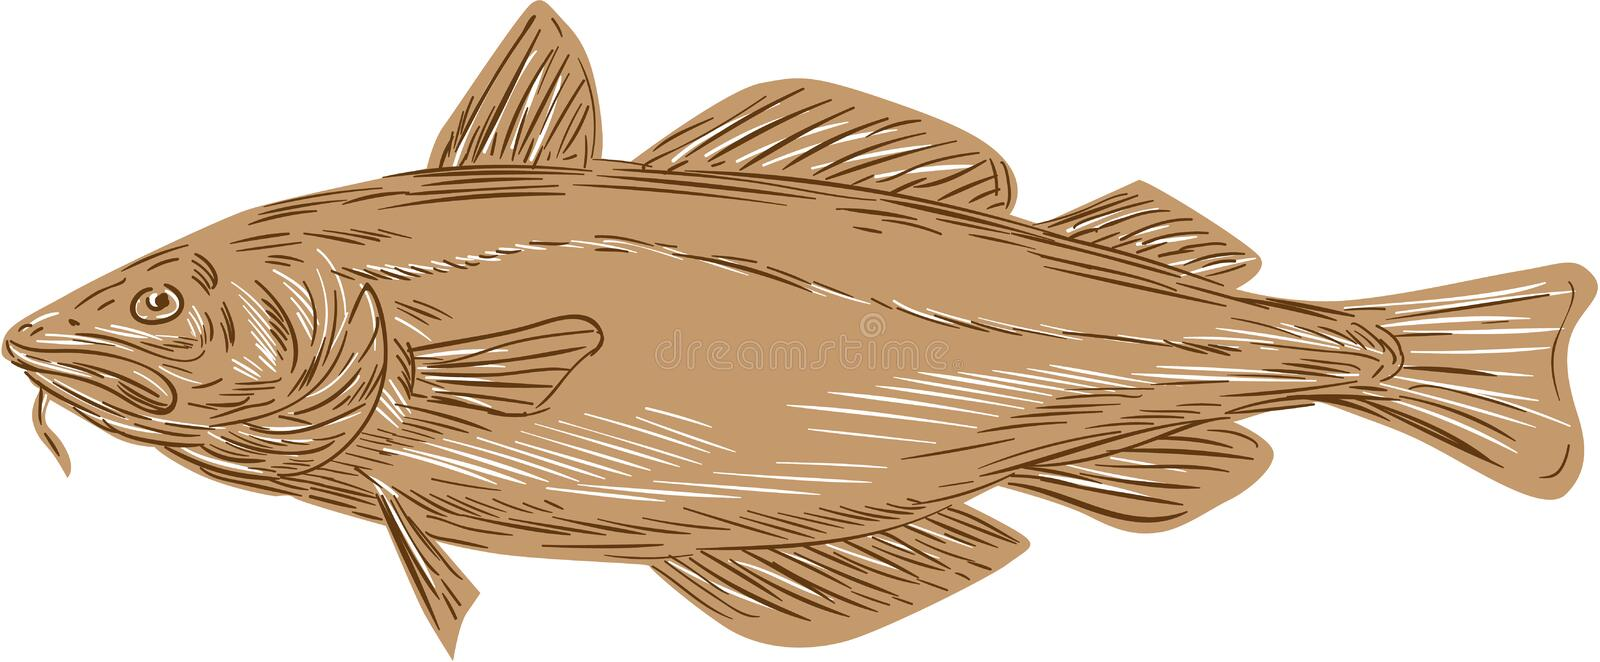 Atlantic Cod Codling Fish Drawing. Drawing sketch style illustration of an Atlantic cod, or Gadus morhua, a benthopelagic fish of the family Gadidae, also vector illustration